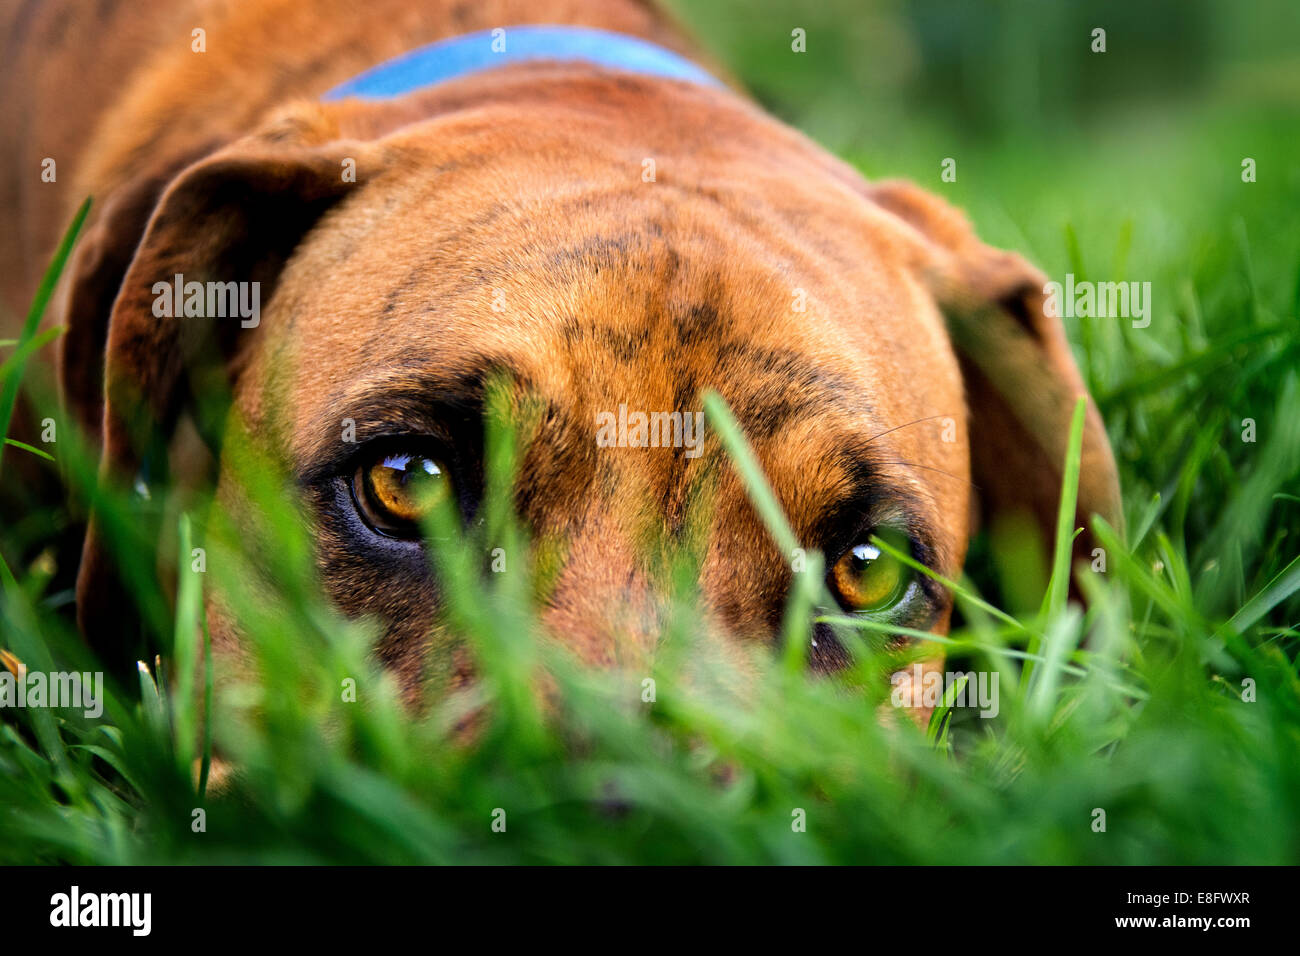 Dog resting in grass - Stock Image